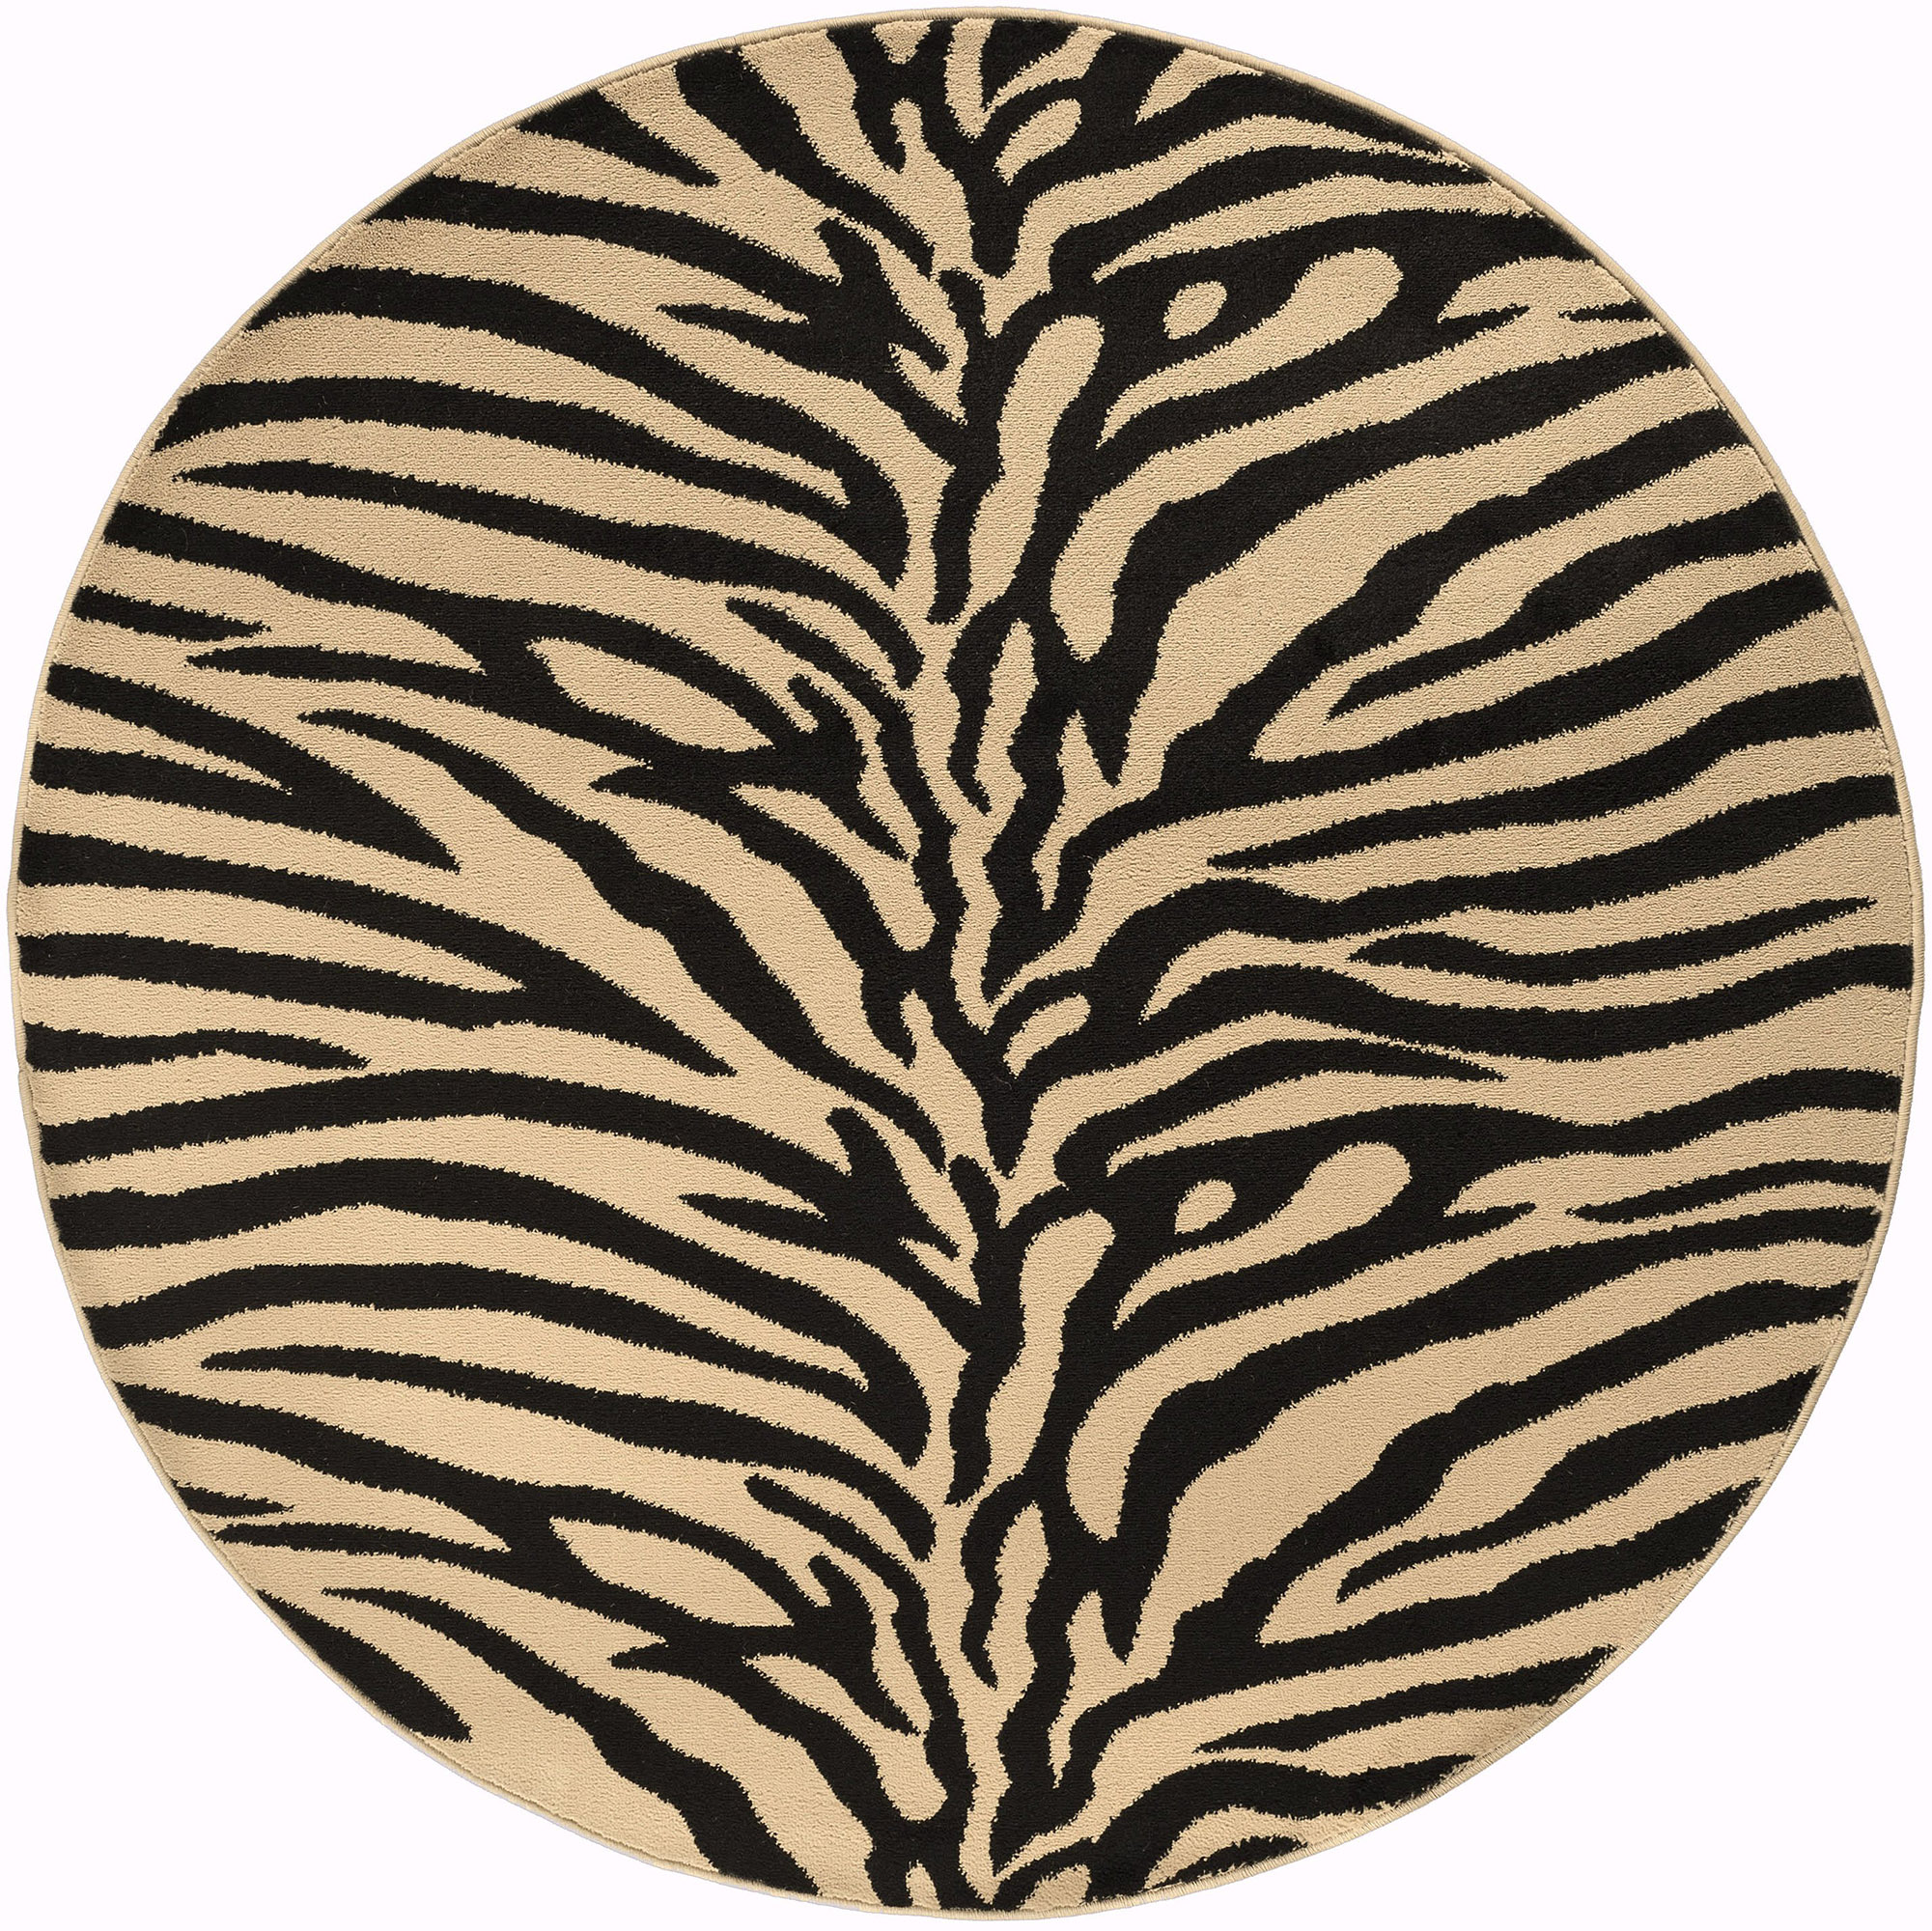 Modern Exotic Zebra Animal Print 8' Round Area Rug Safari